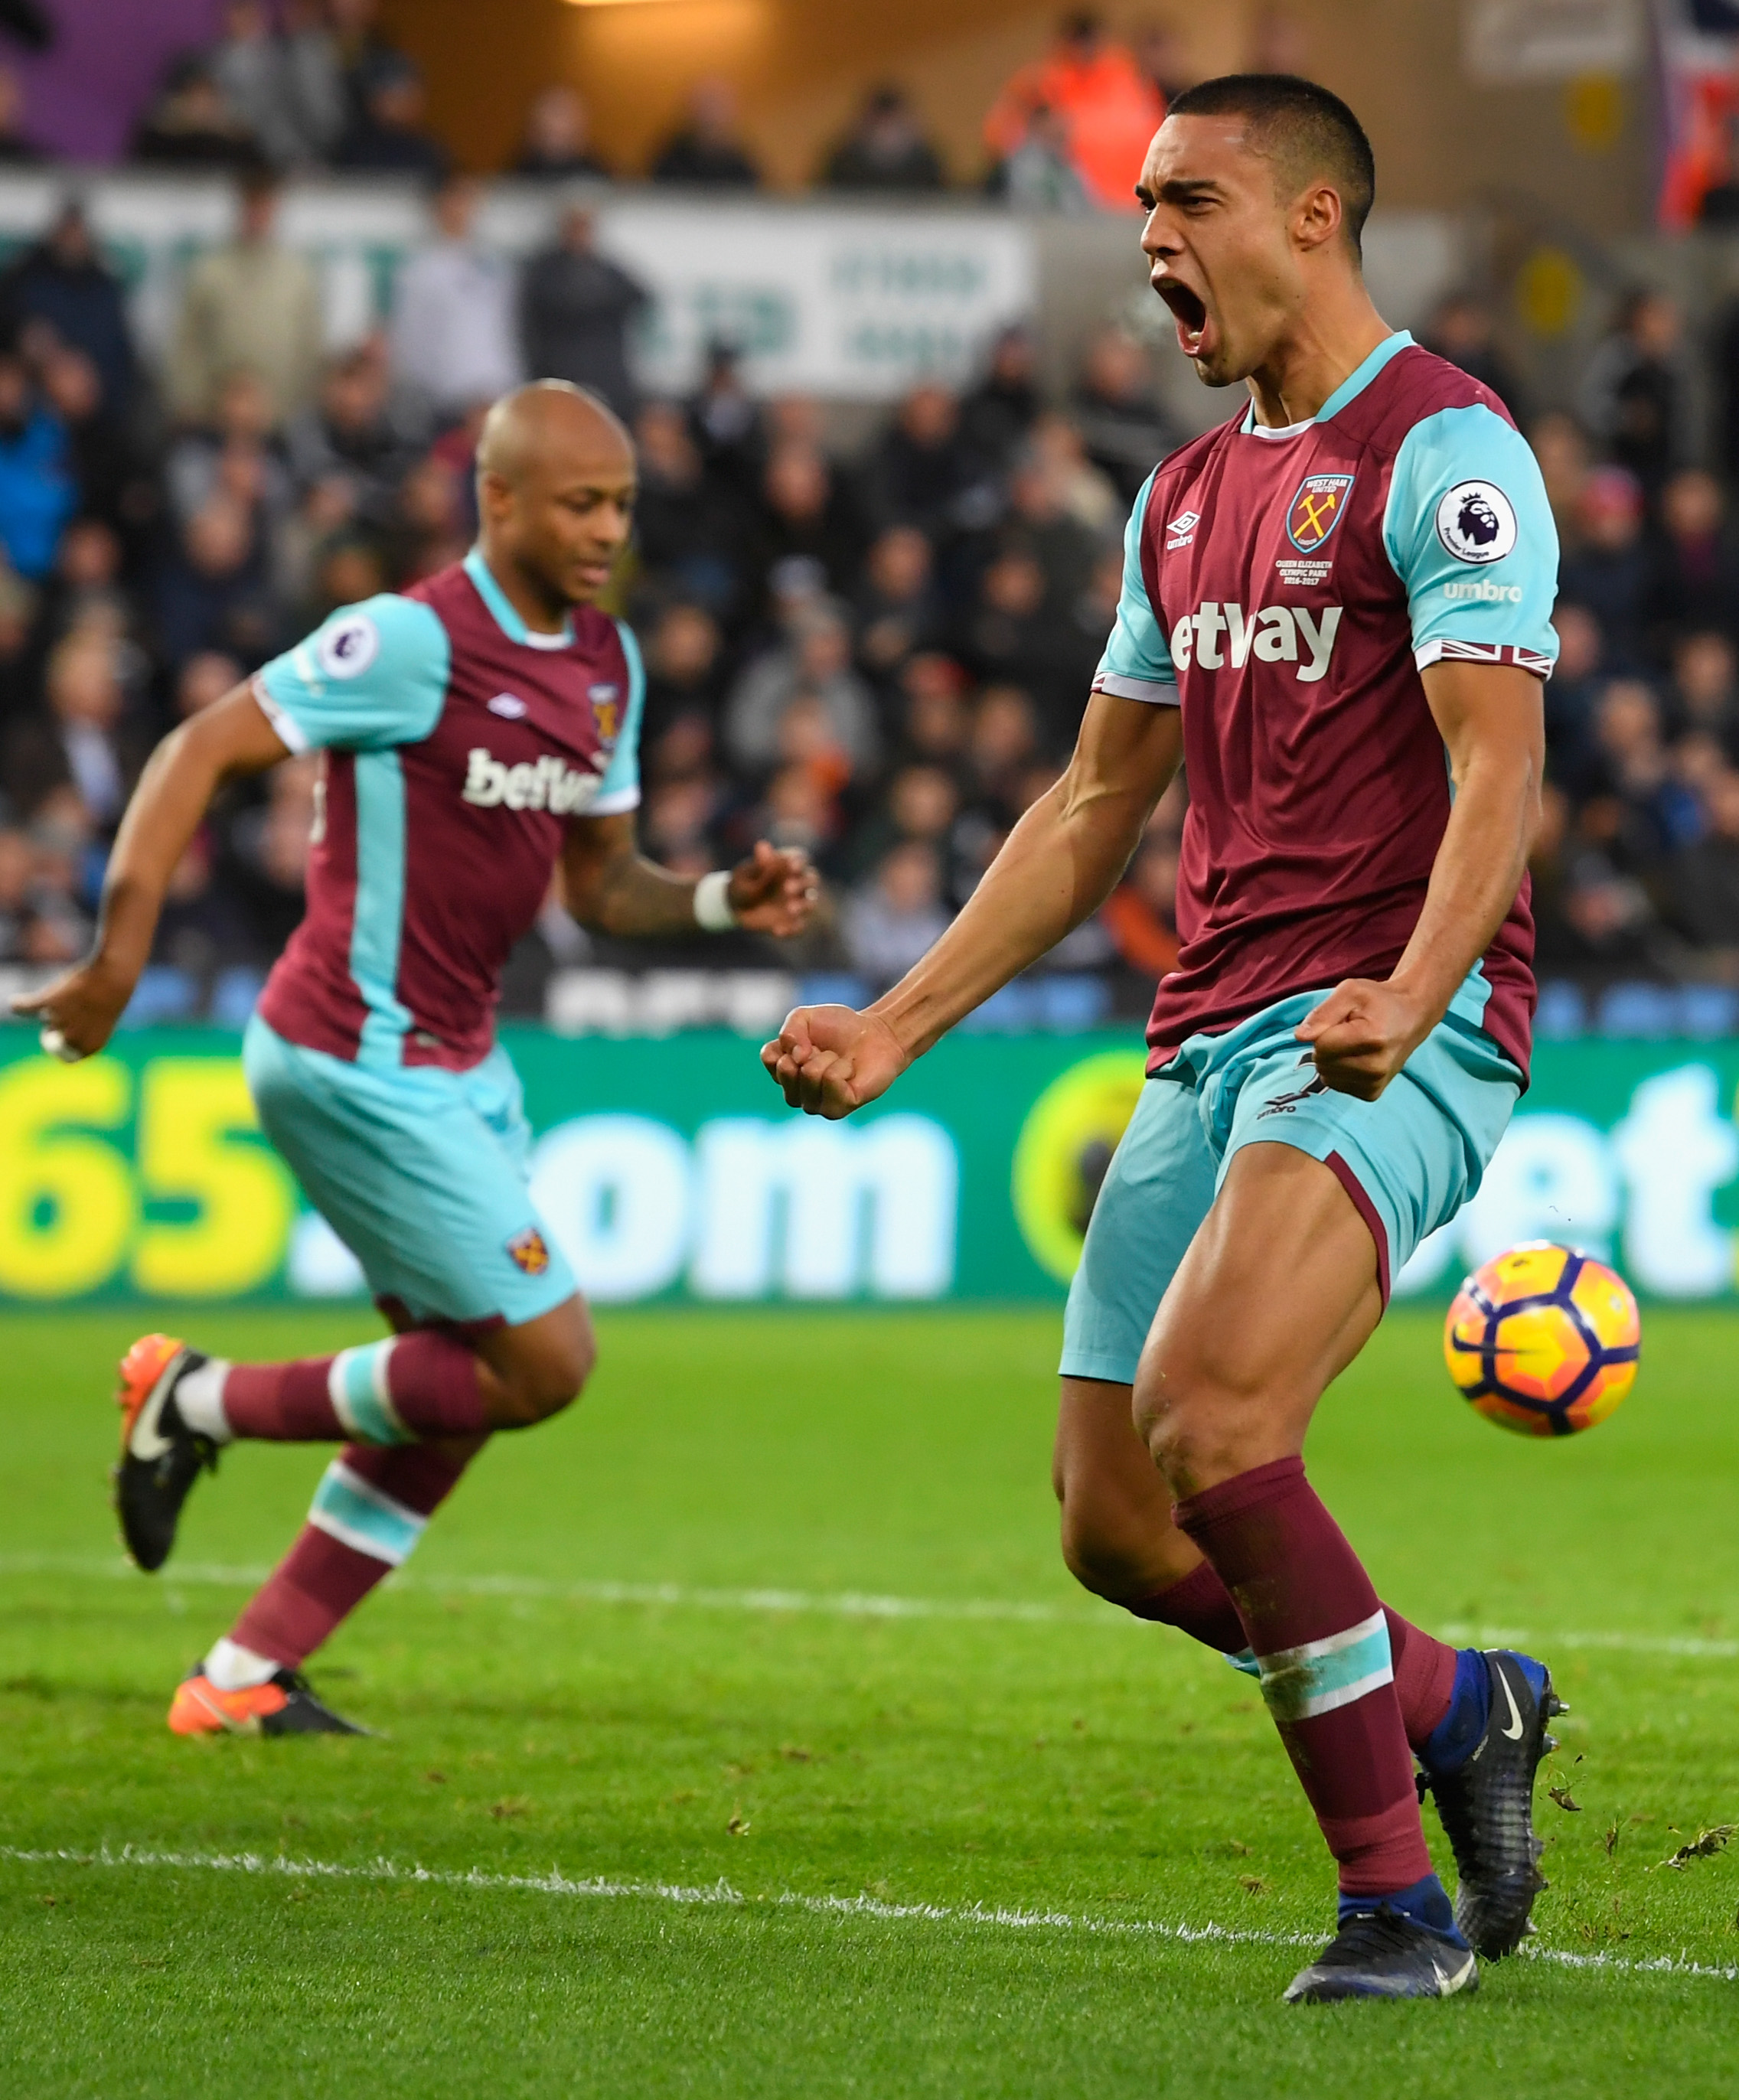 Swansea City v West Ham United- Premier League